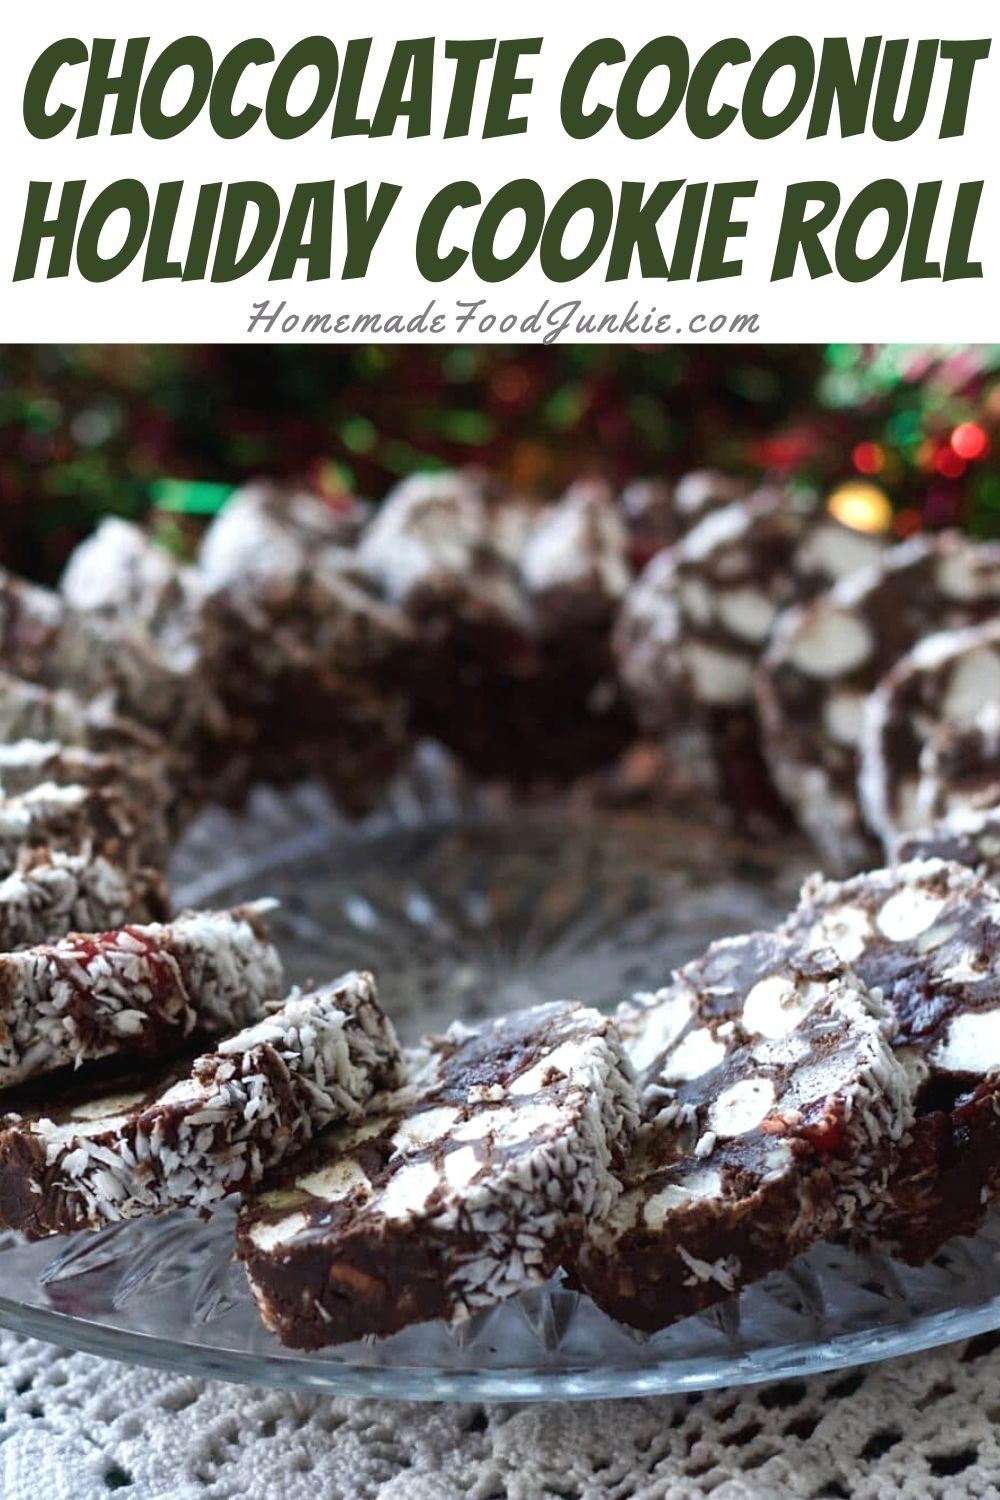 Chocolate coconut holiday cookie roll-pin image